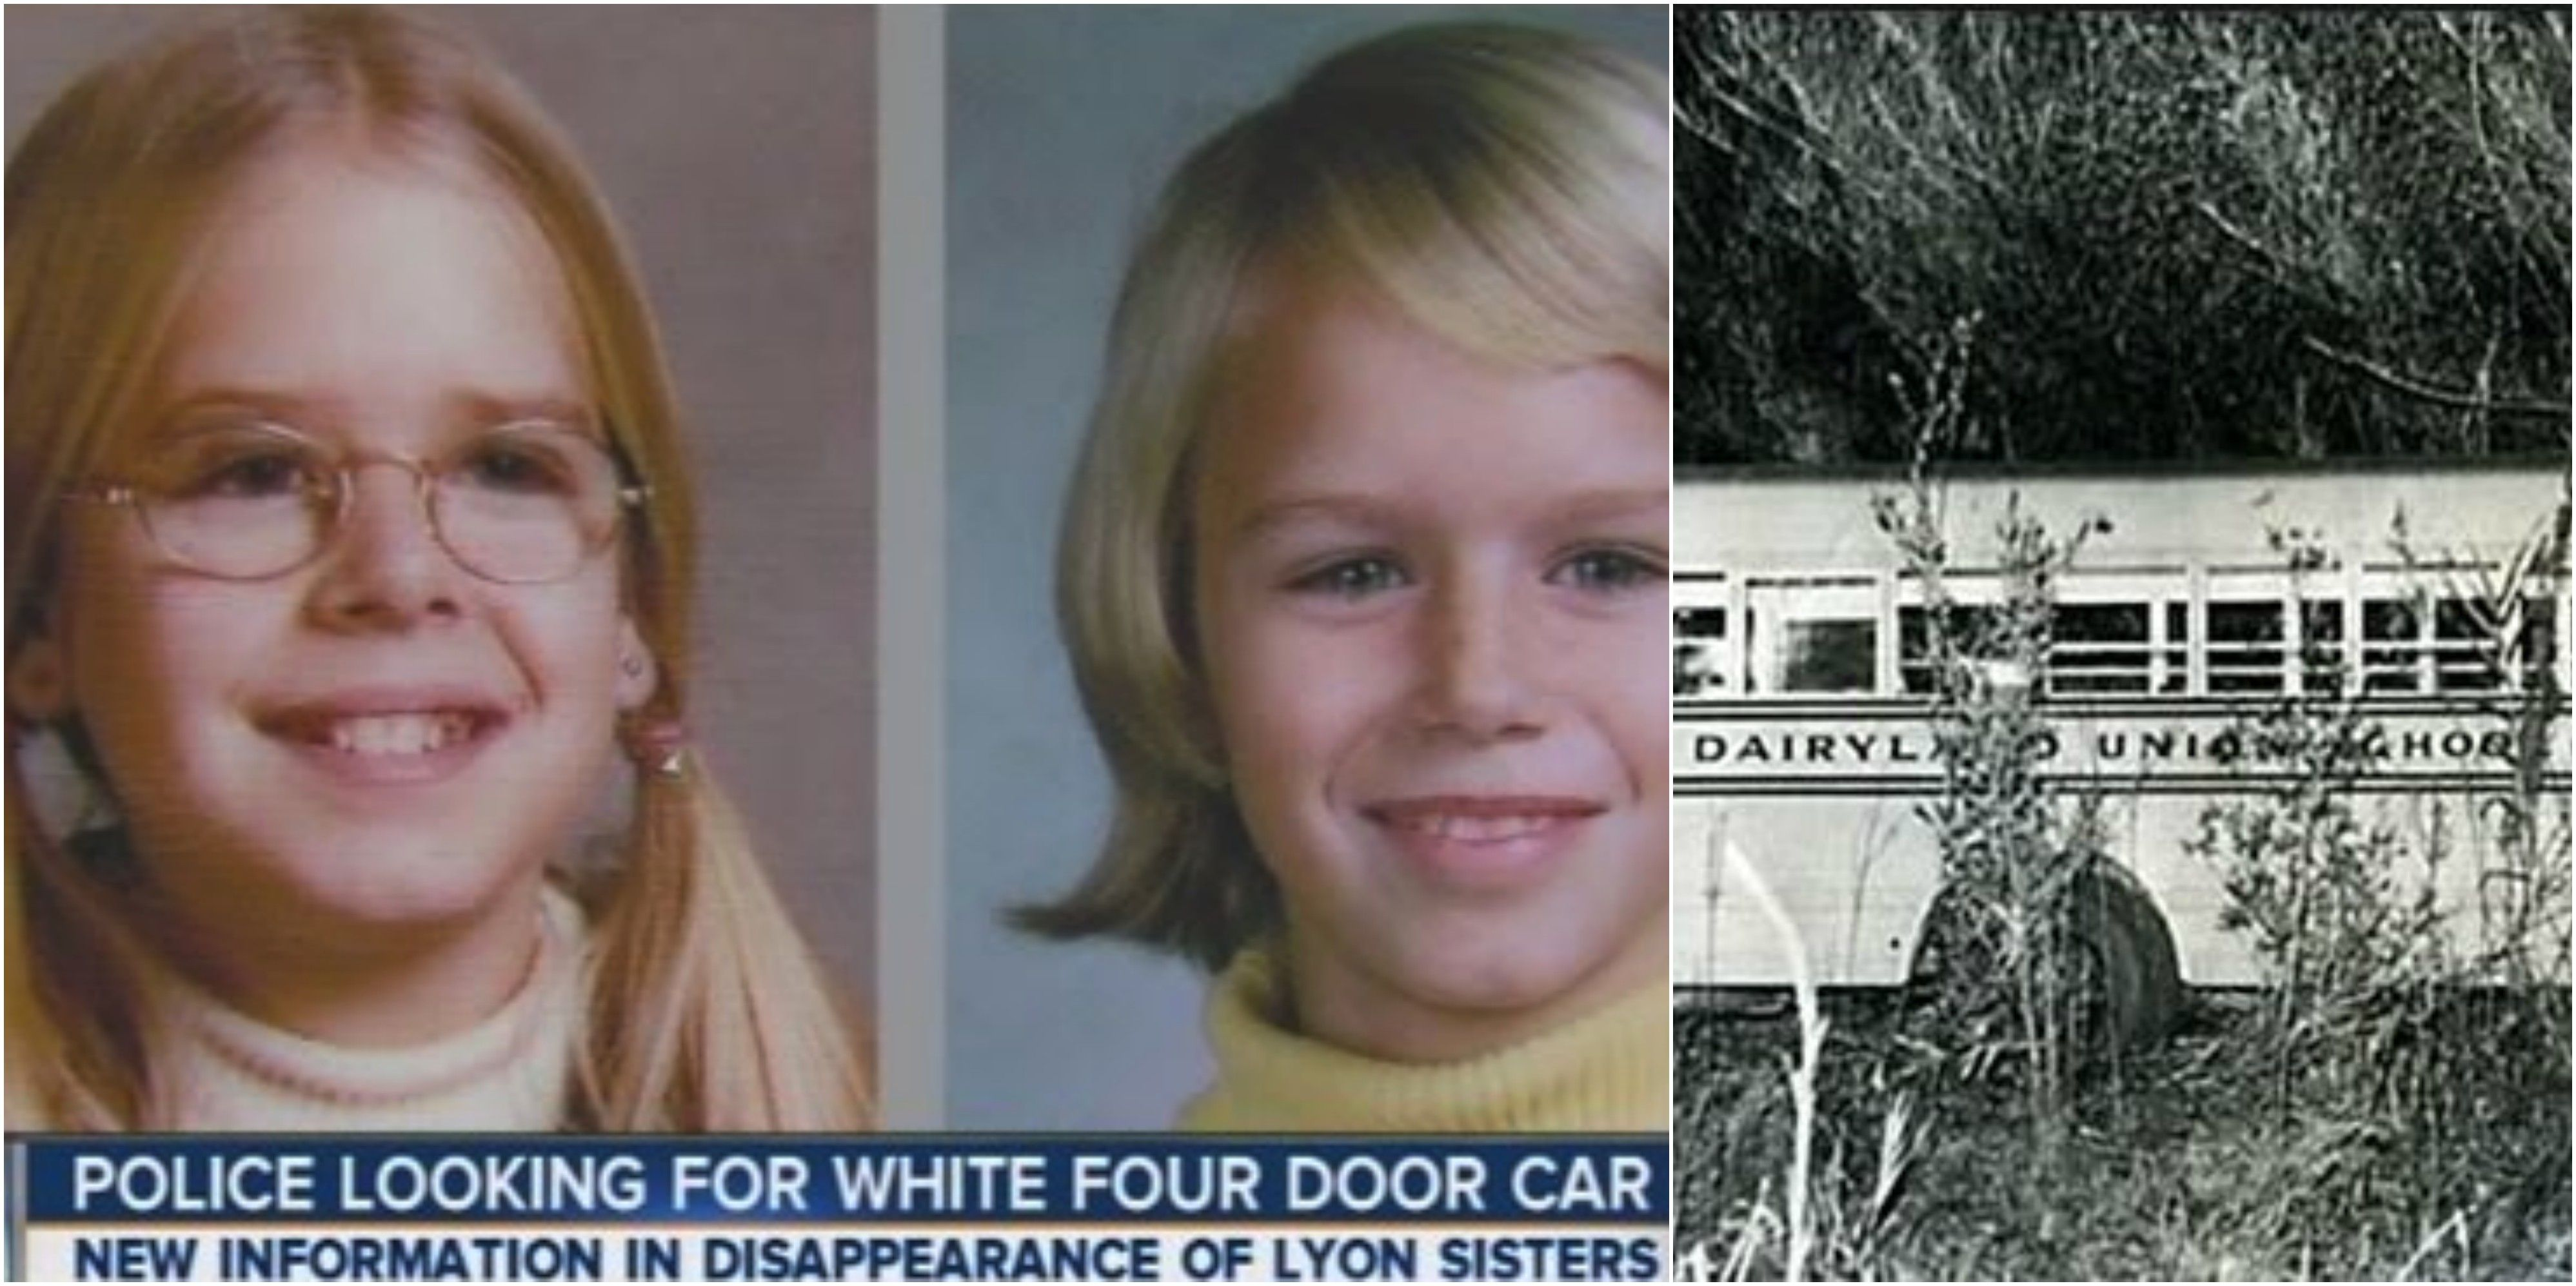 The Most Heartbreaking Kidnapping Stories That Messed Us Up